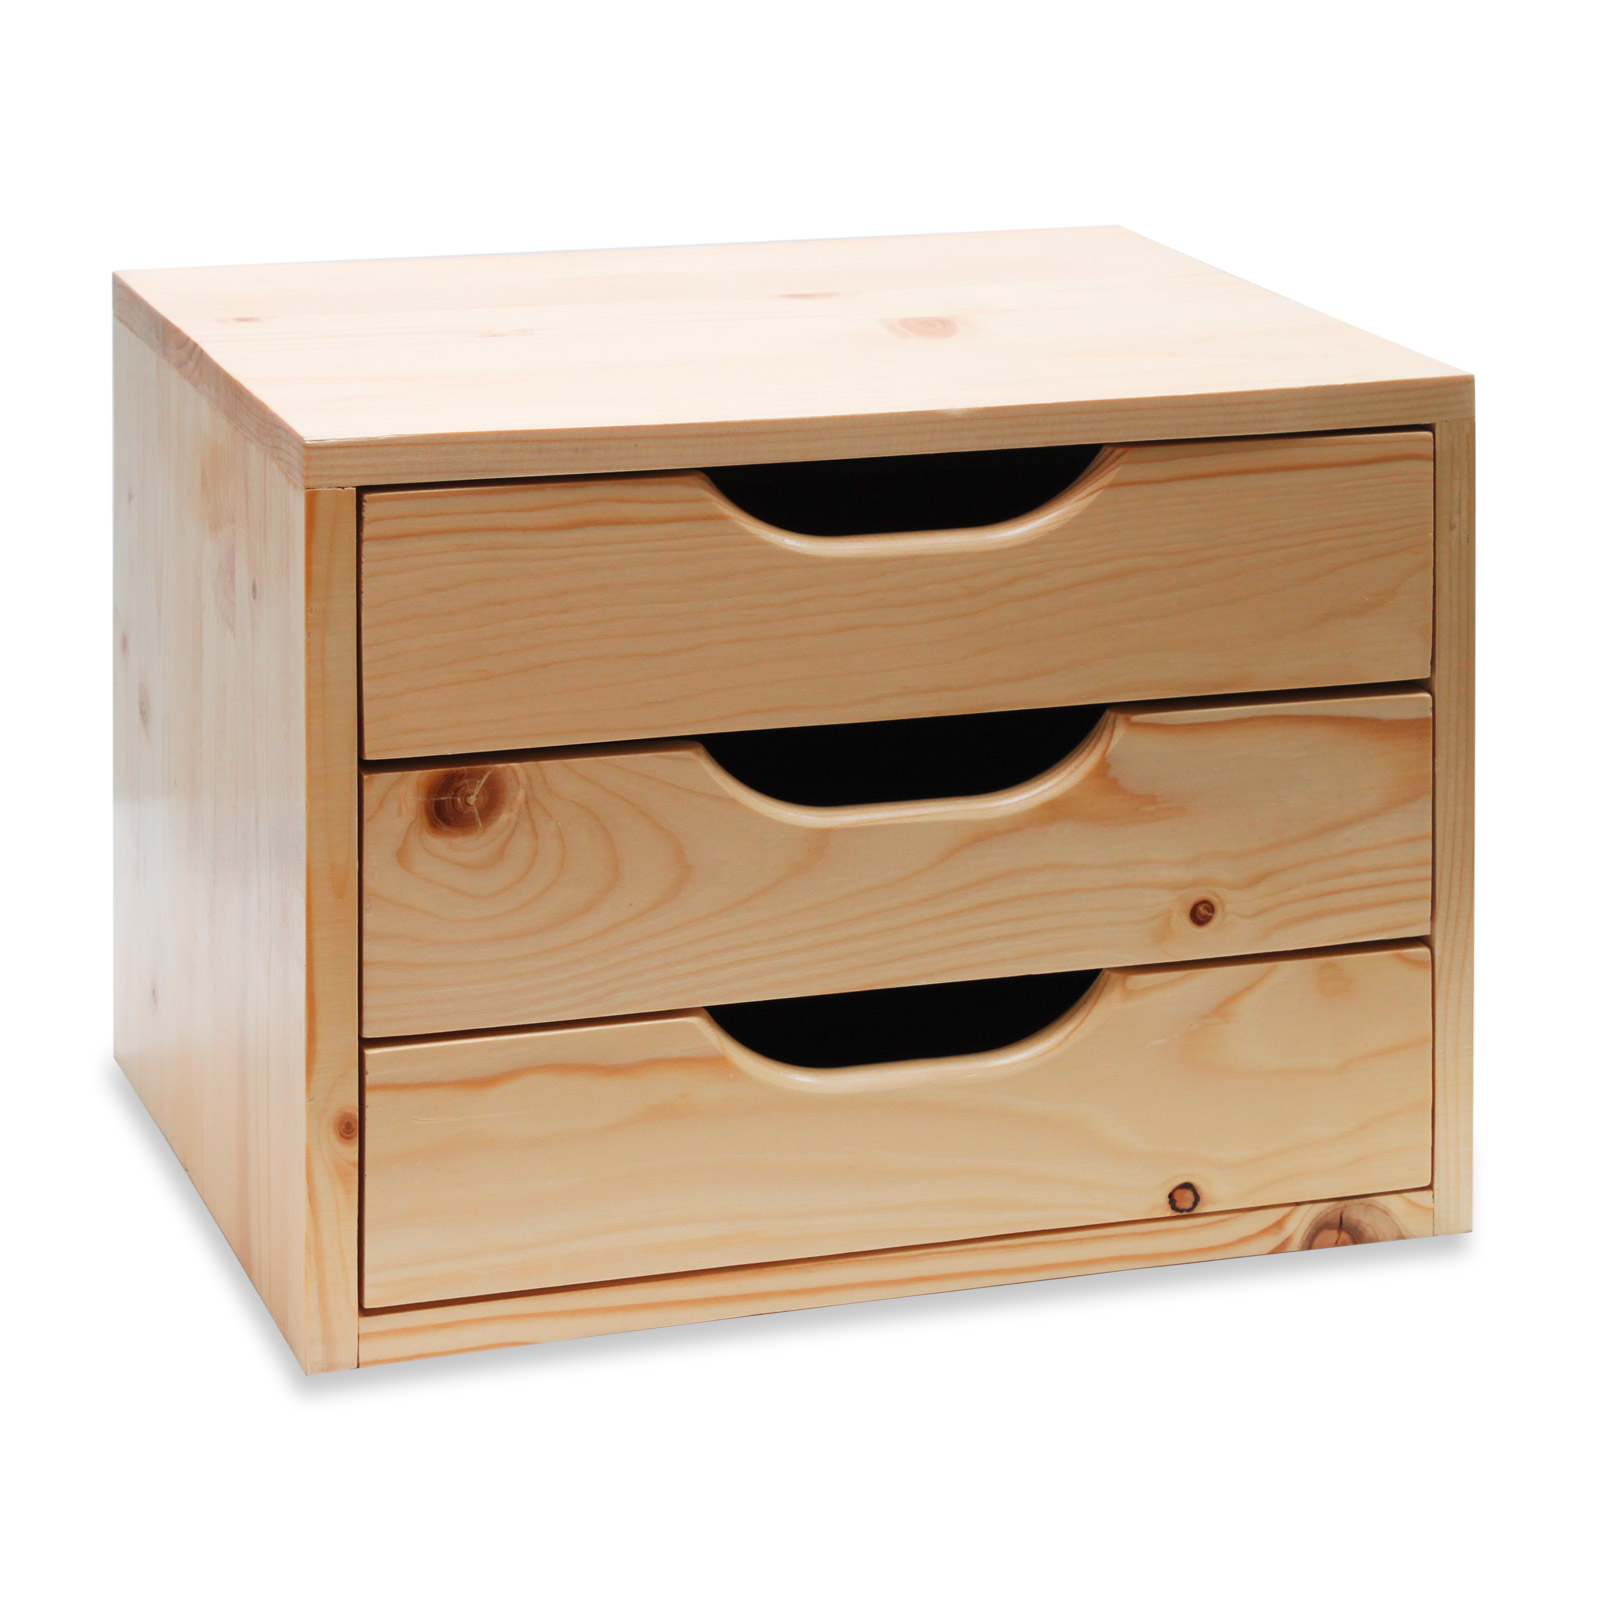 40617 holz schubladenbox beistelltisch holz box briefablage schubladenschrank ebay. Black Bedroom Furniture Sets. Home Design Ideas